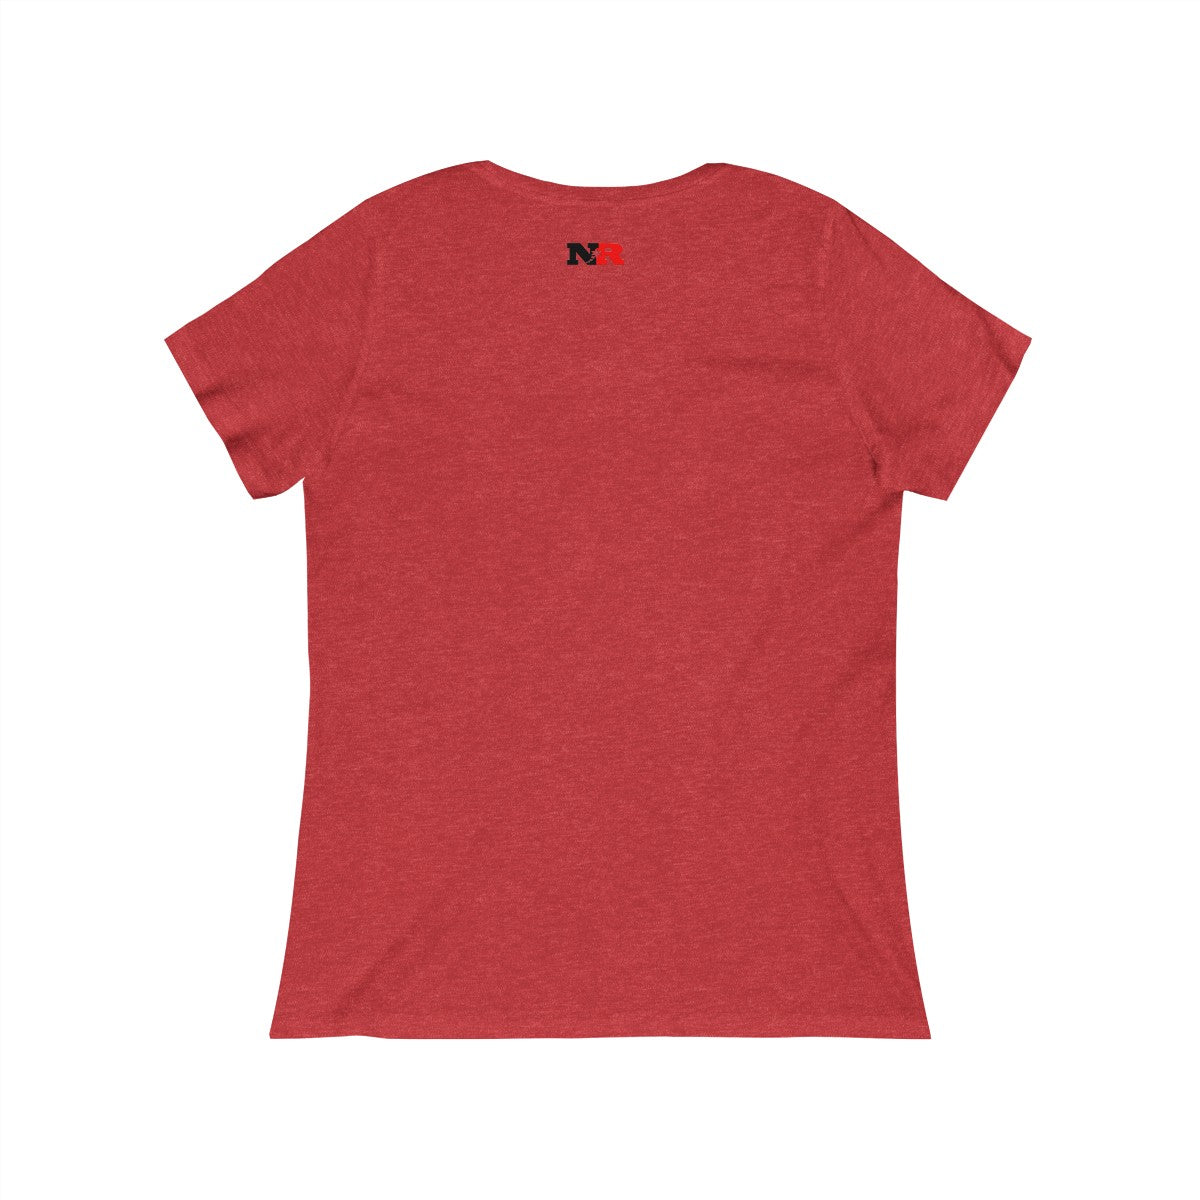 Women's Relaxed Jersey Short Sleeve Scoop Neck Tee - Caution